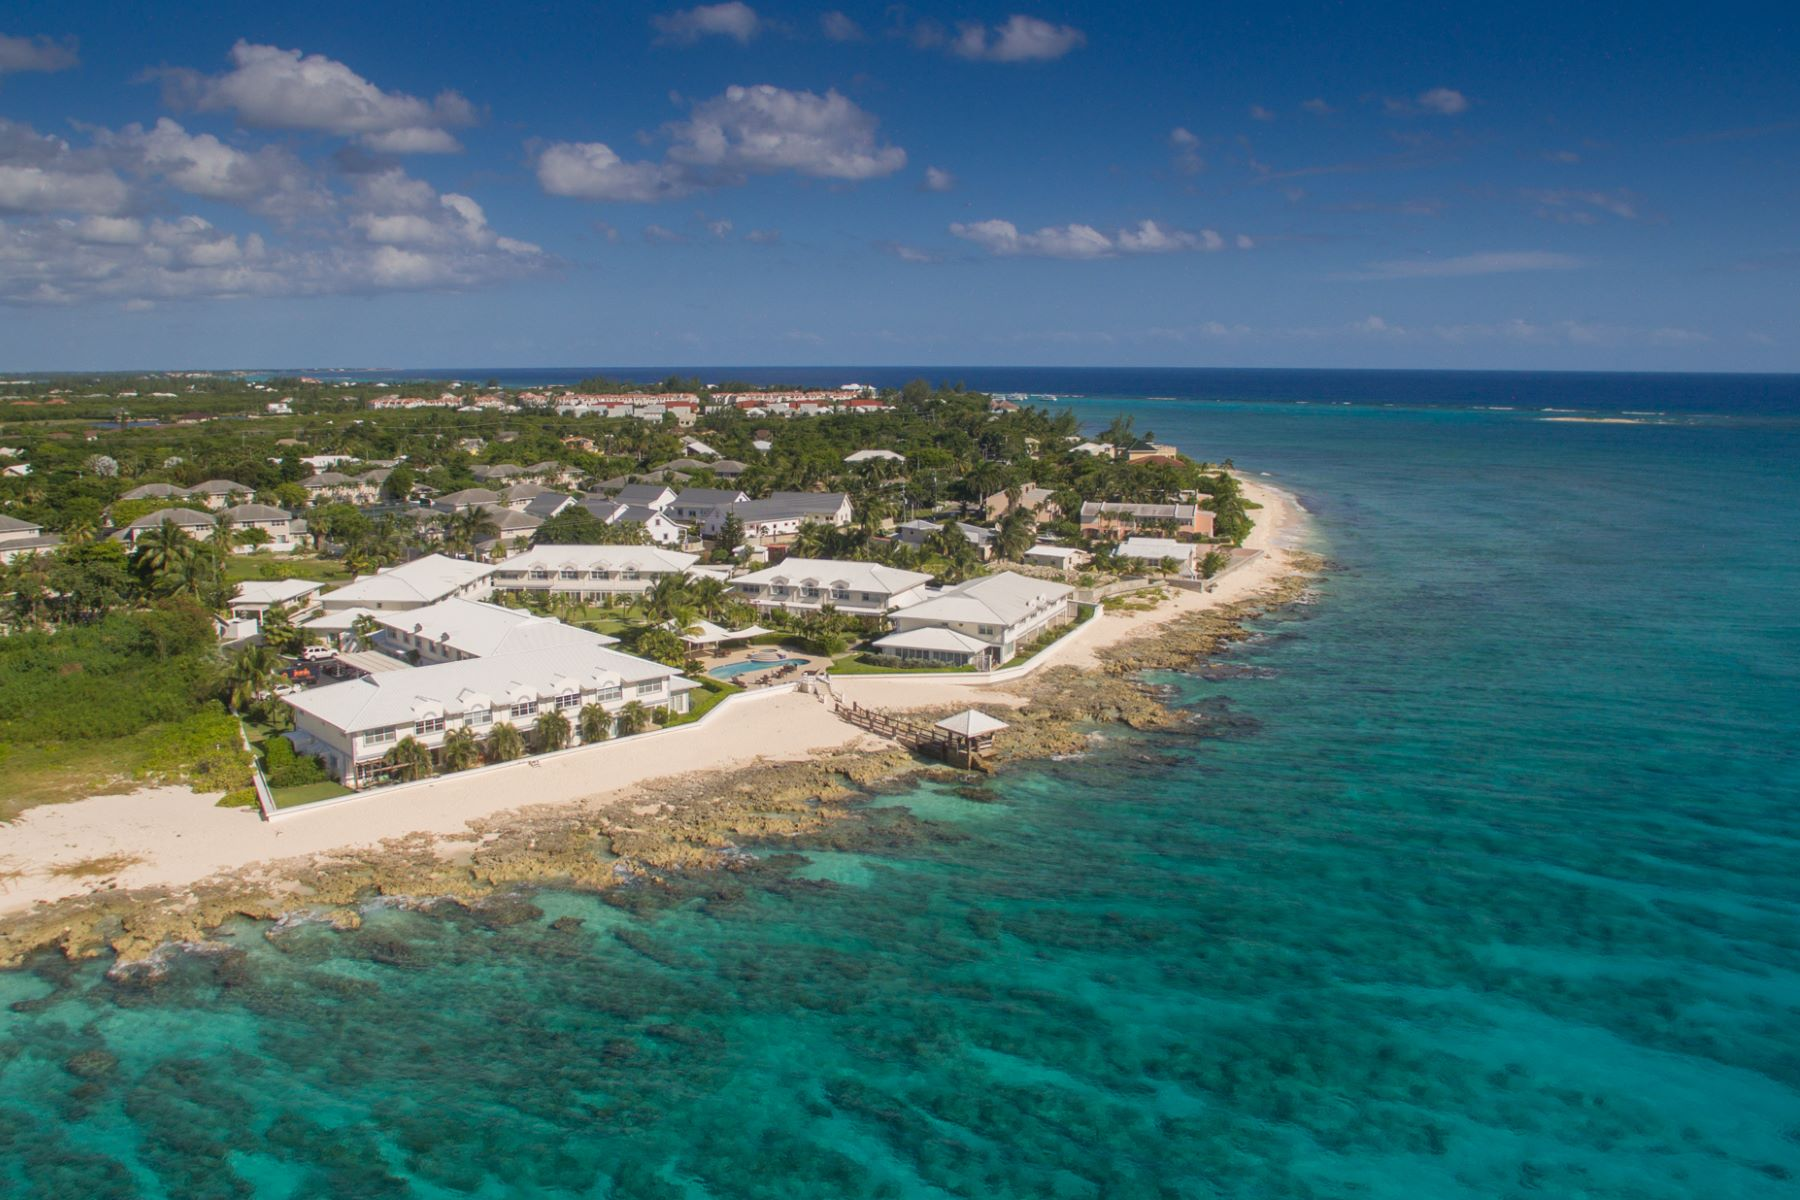 Condominium for Sale at Windsor Village #17 S Church St George Town, Grand Cayman, KY1 Cayman Islands